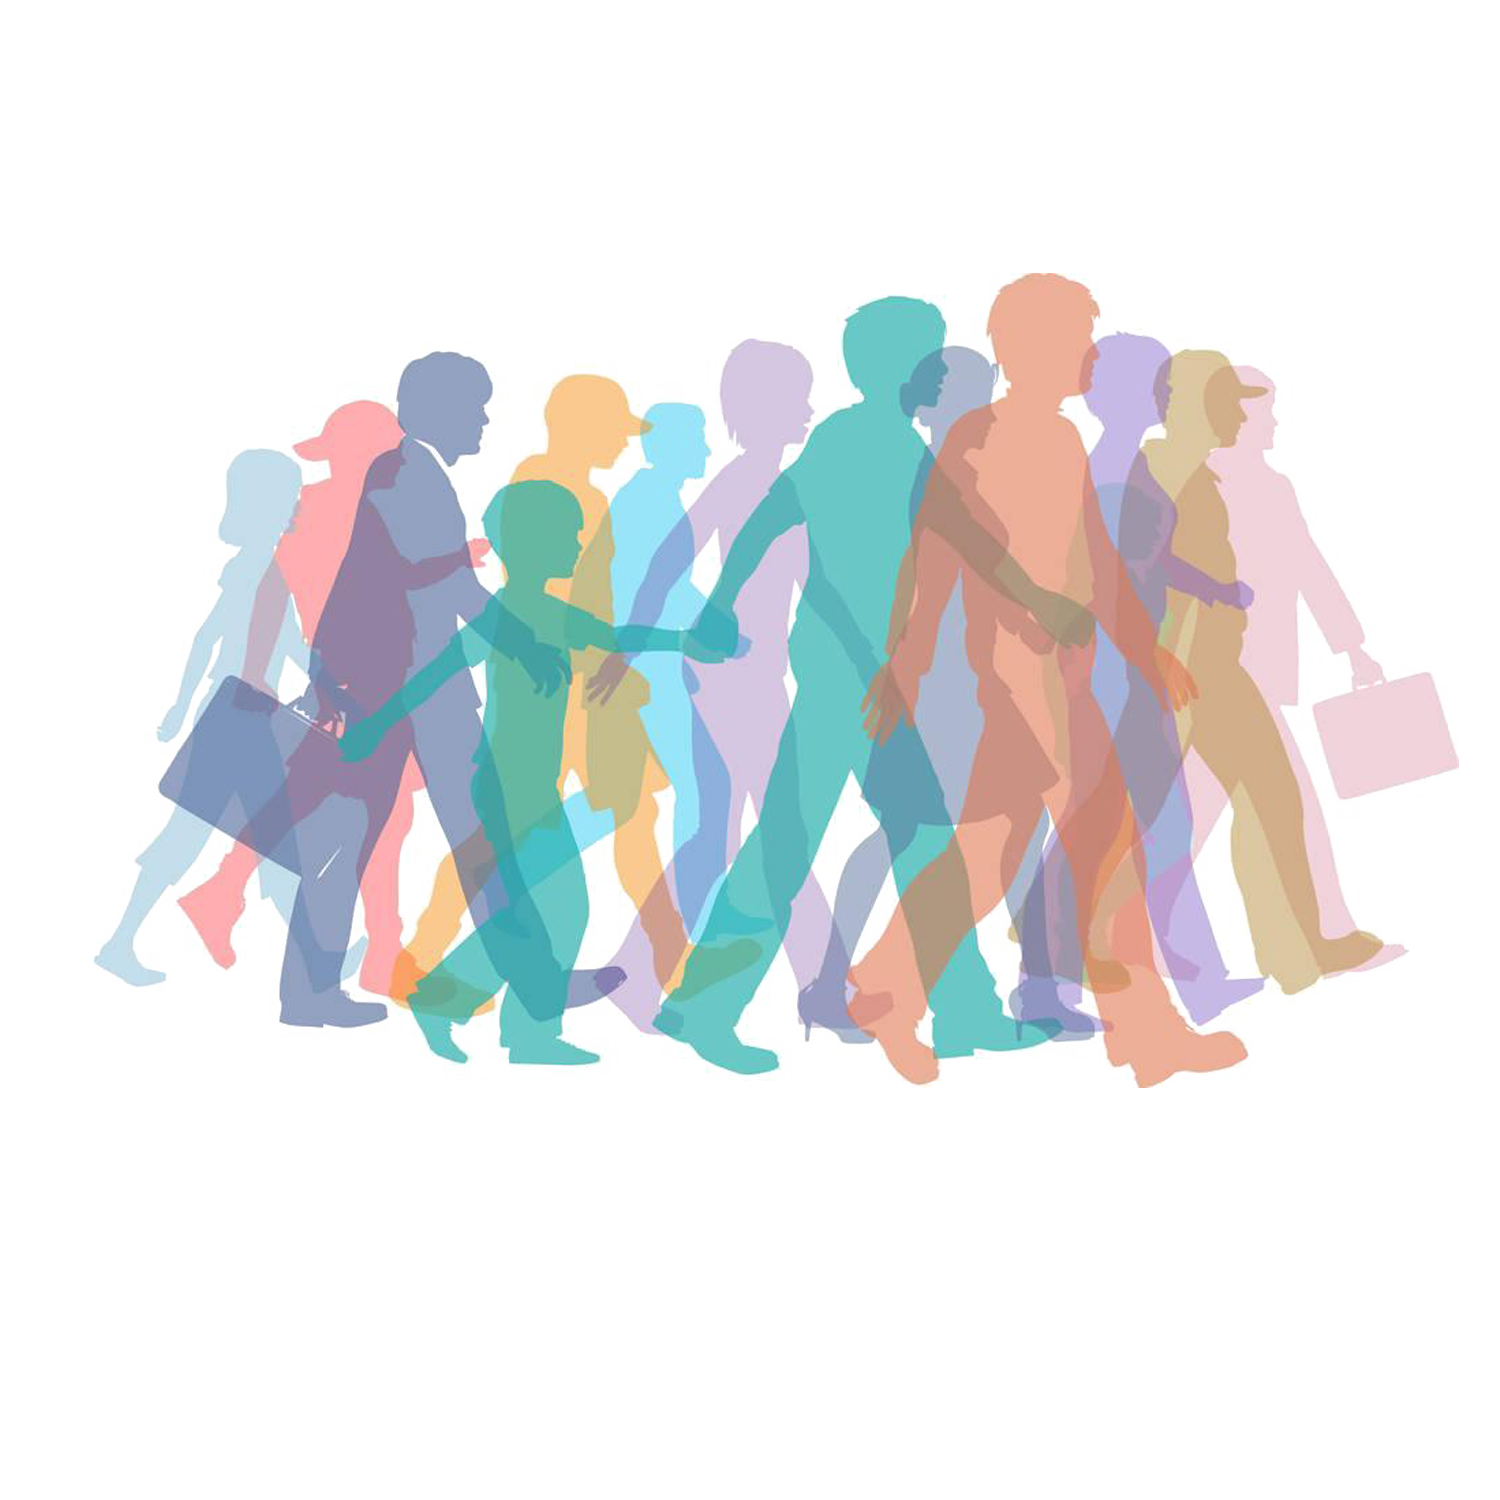 Crowd clipart students. People clip art crowds